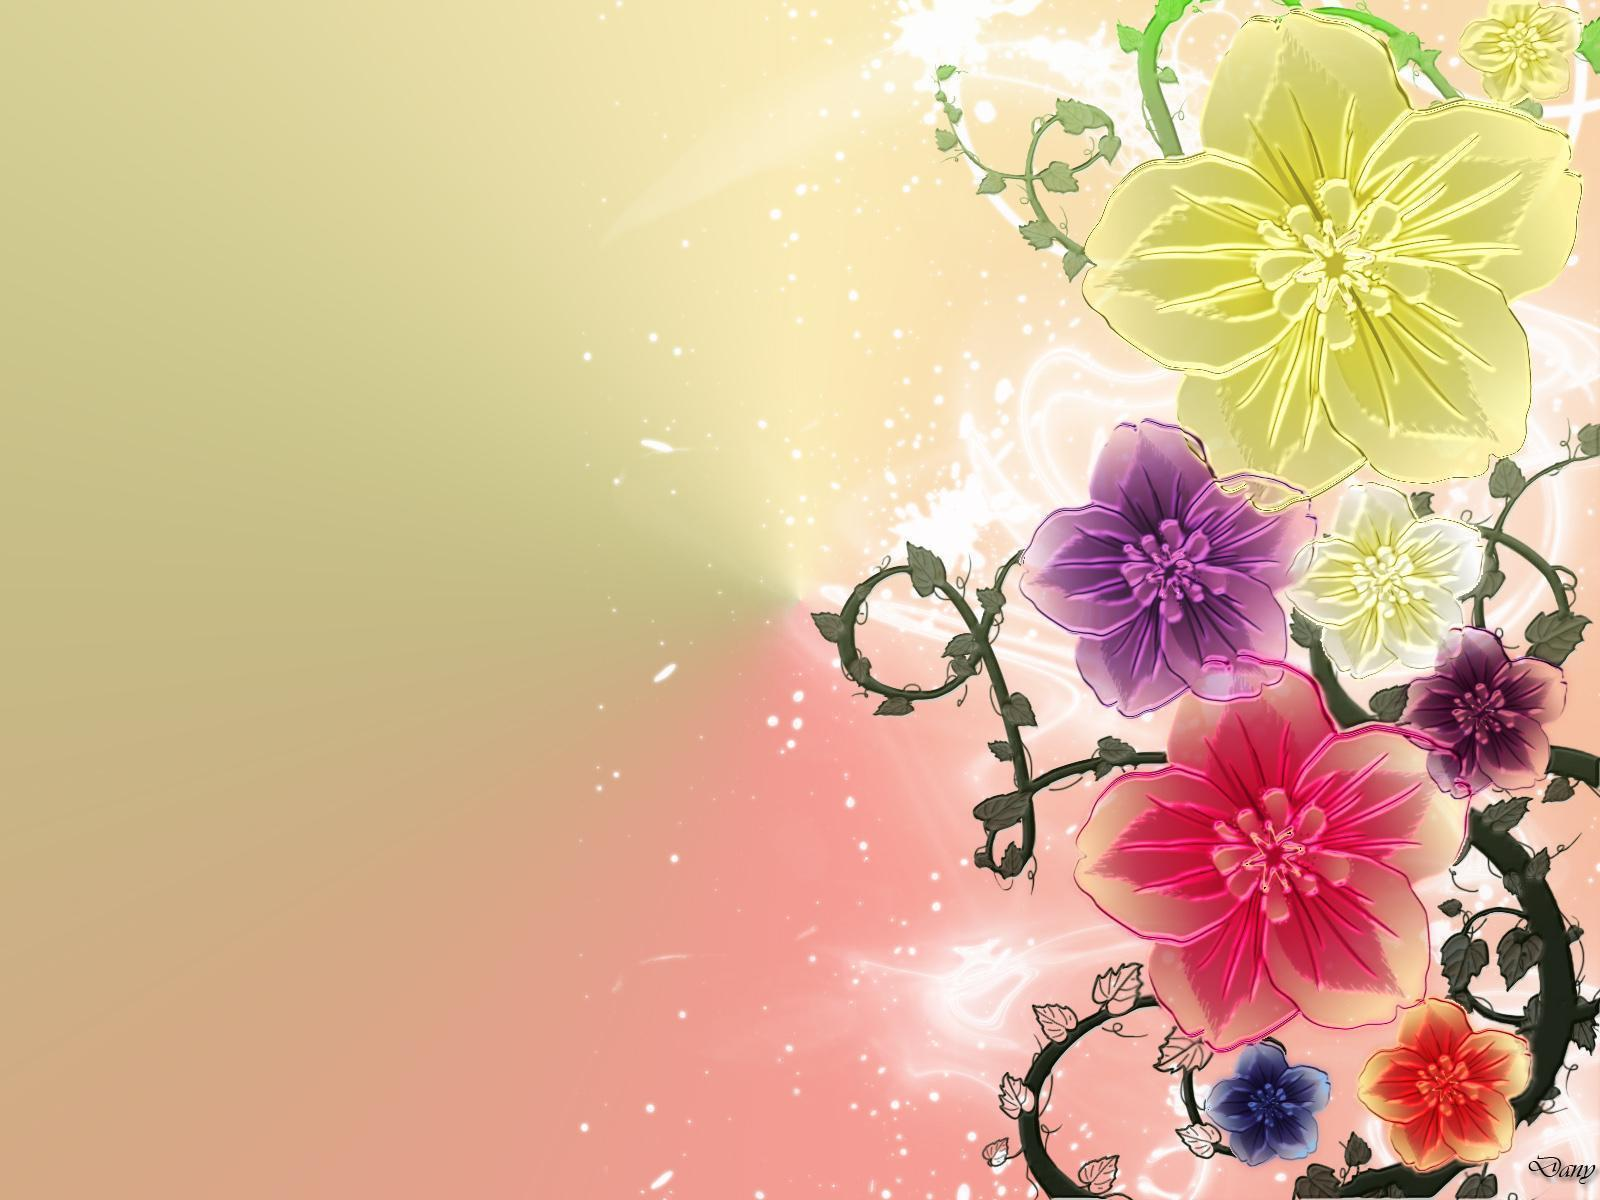 art flowers background wallpaper - photo #17